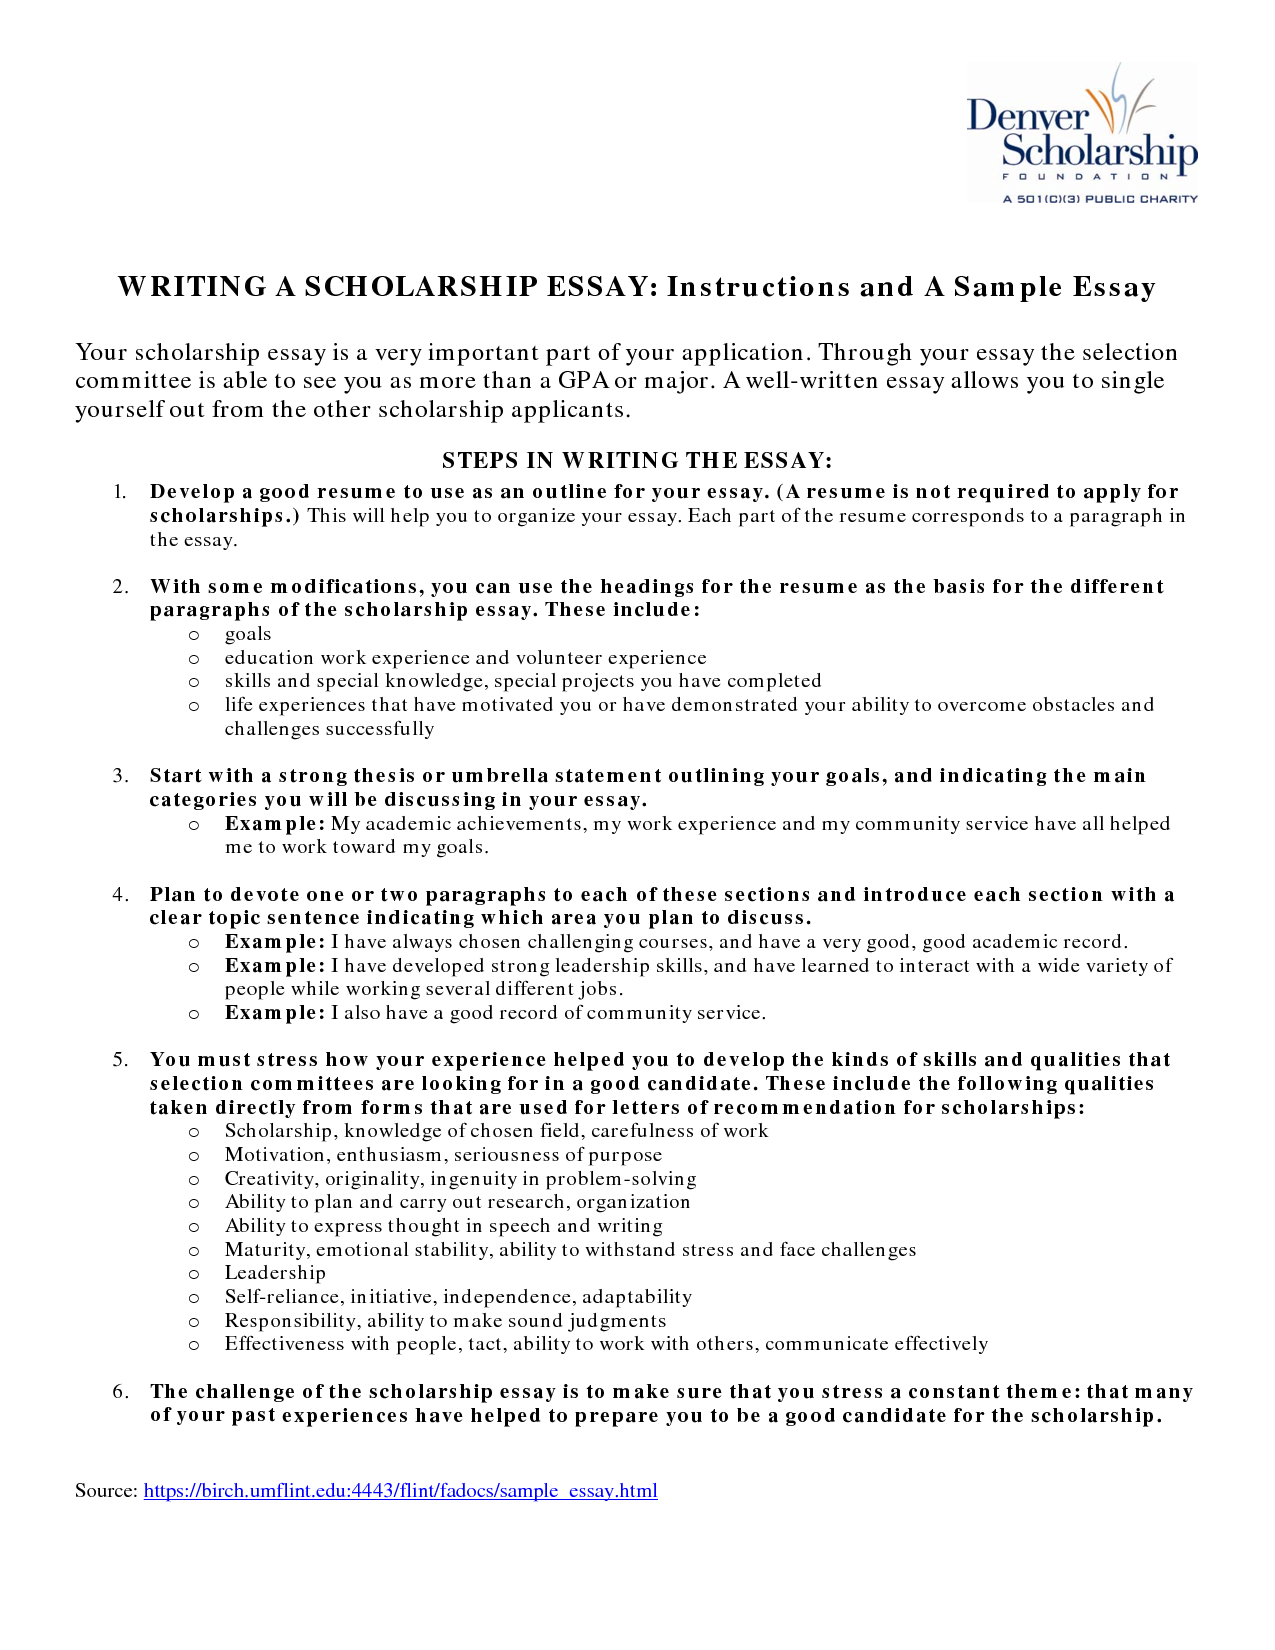 Bob Po Essay Writing